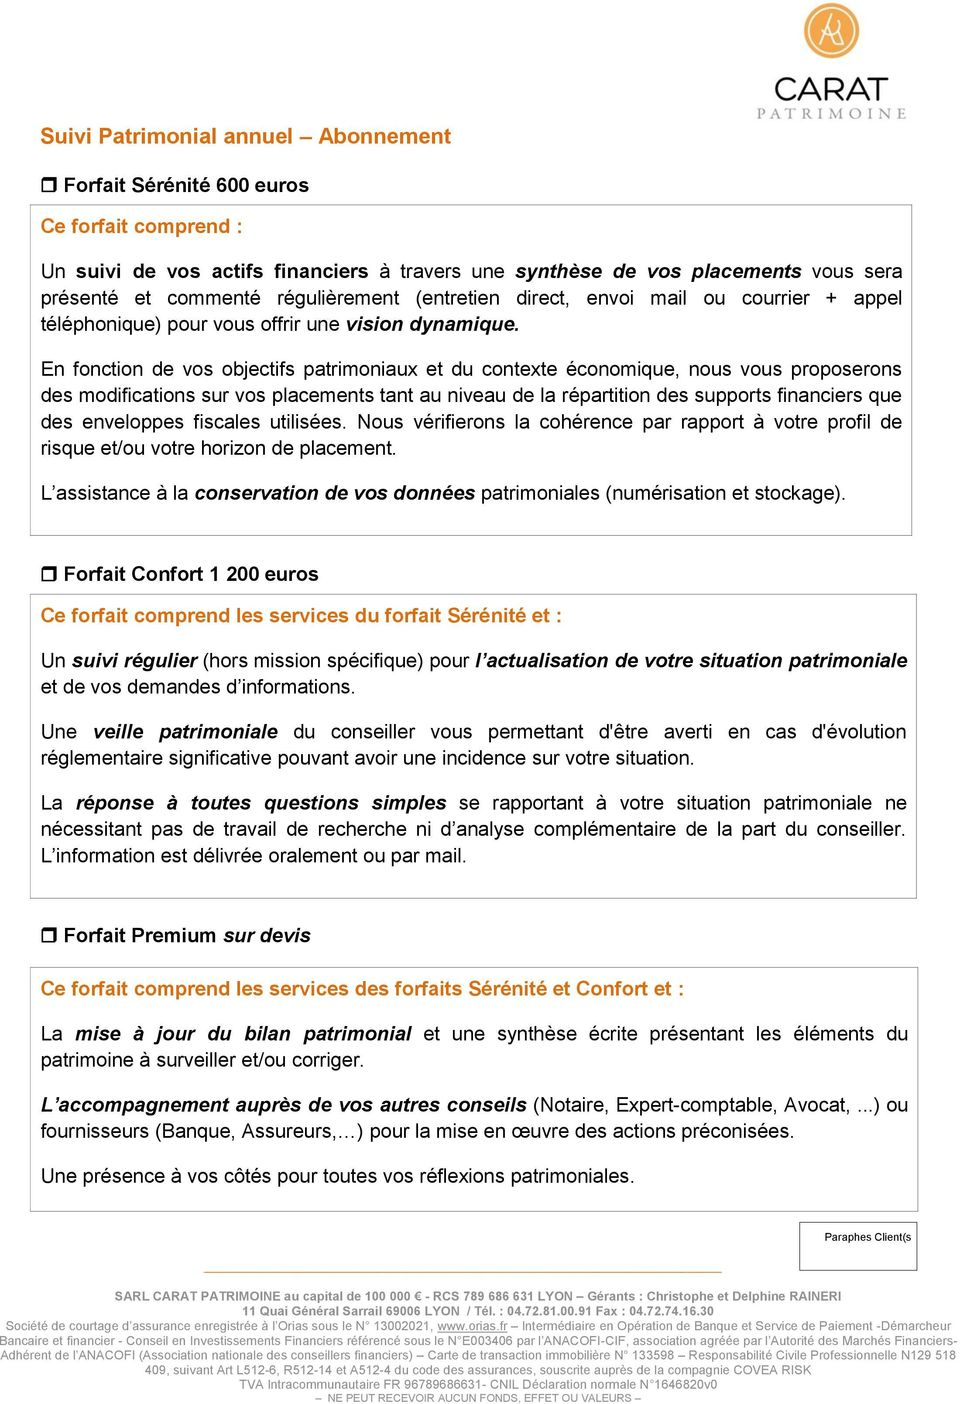 En fonction de vos objectifs patrimoniaux et du contexte économique, nous vous proposerons des modifications sur vos placements tant au niveau de la répartition des supports financiers que des